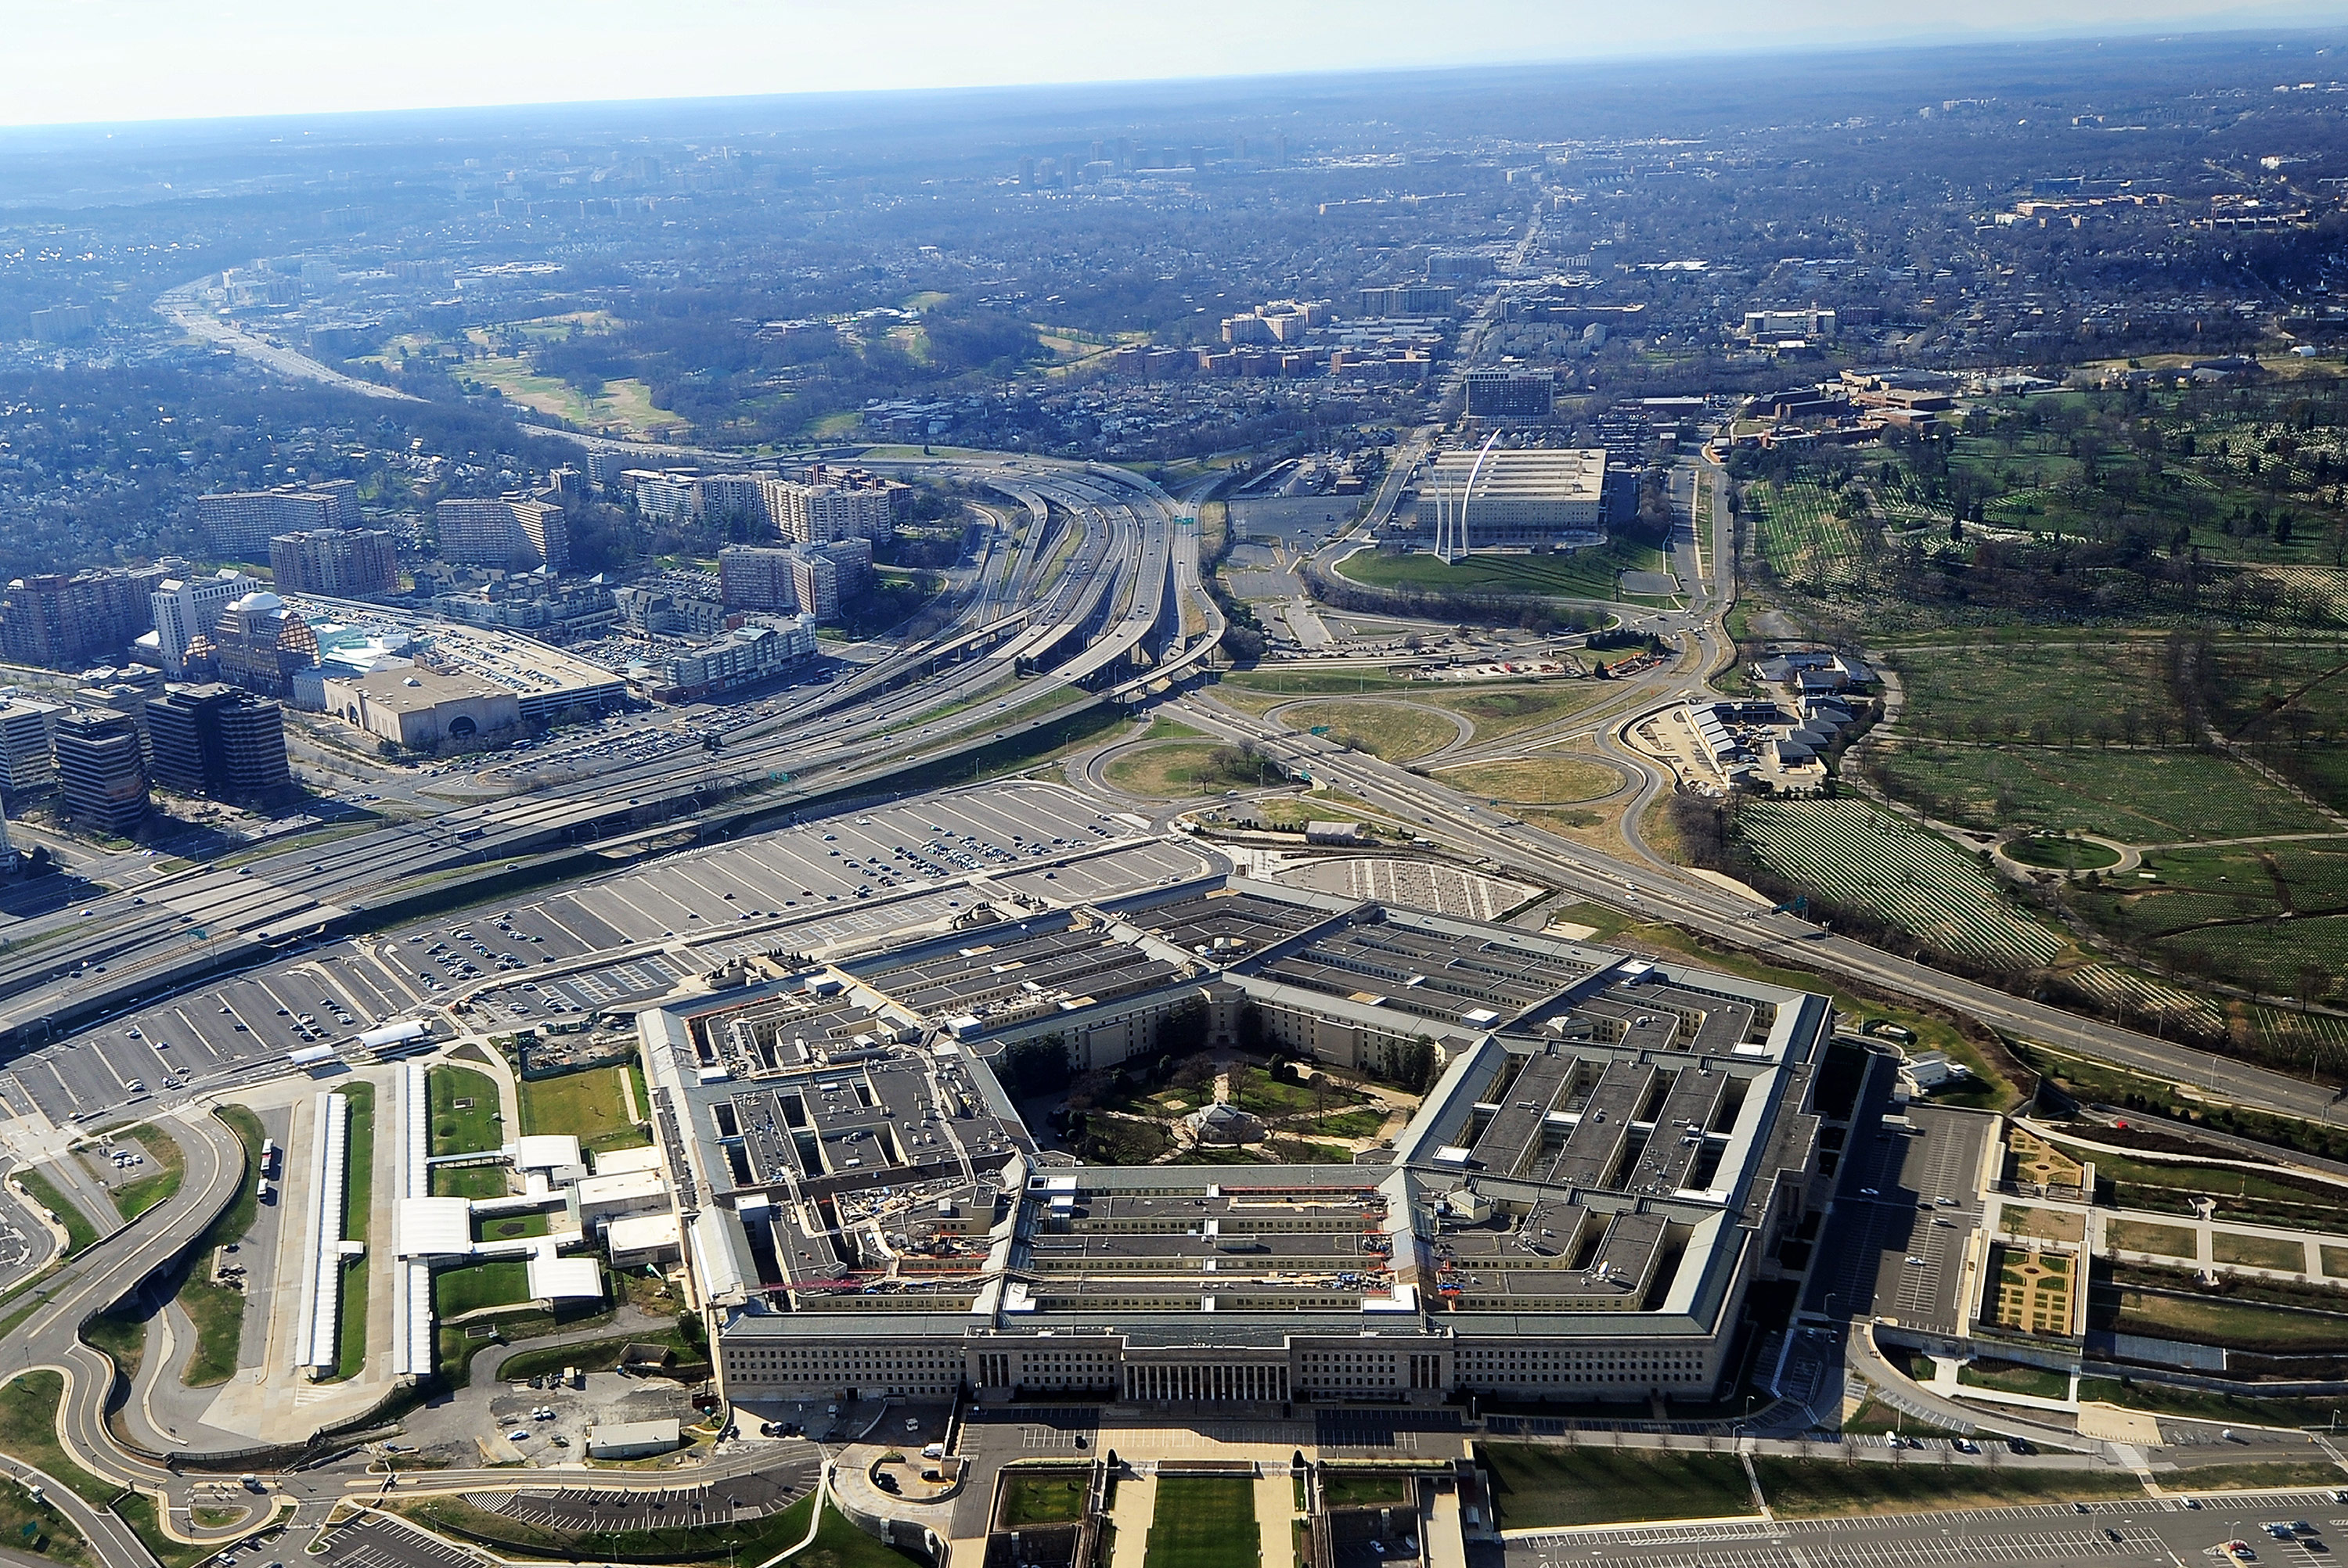 Pentagon drafting ban on displaying Confederate flag at bases